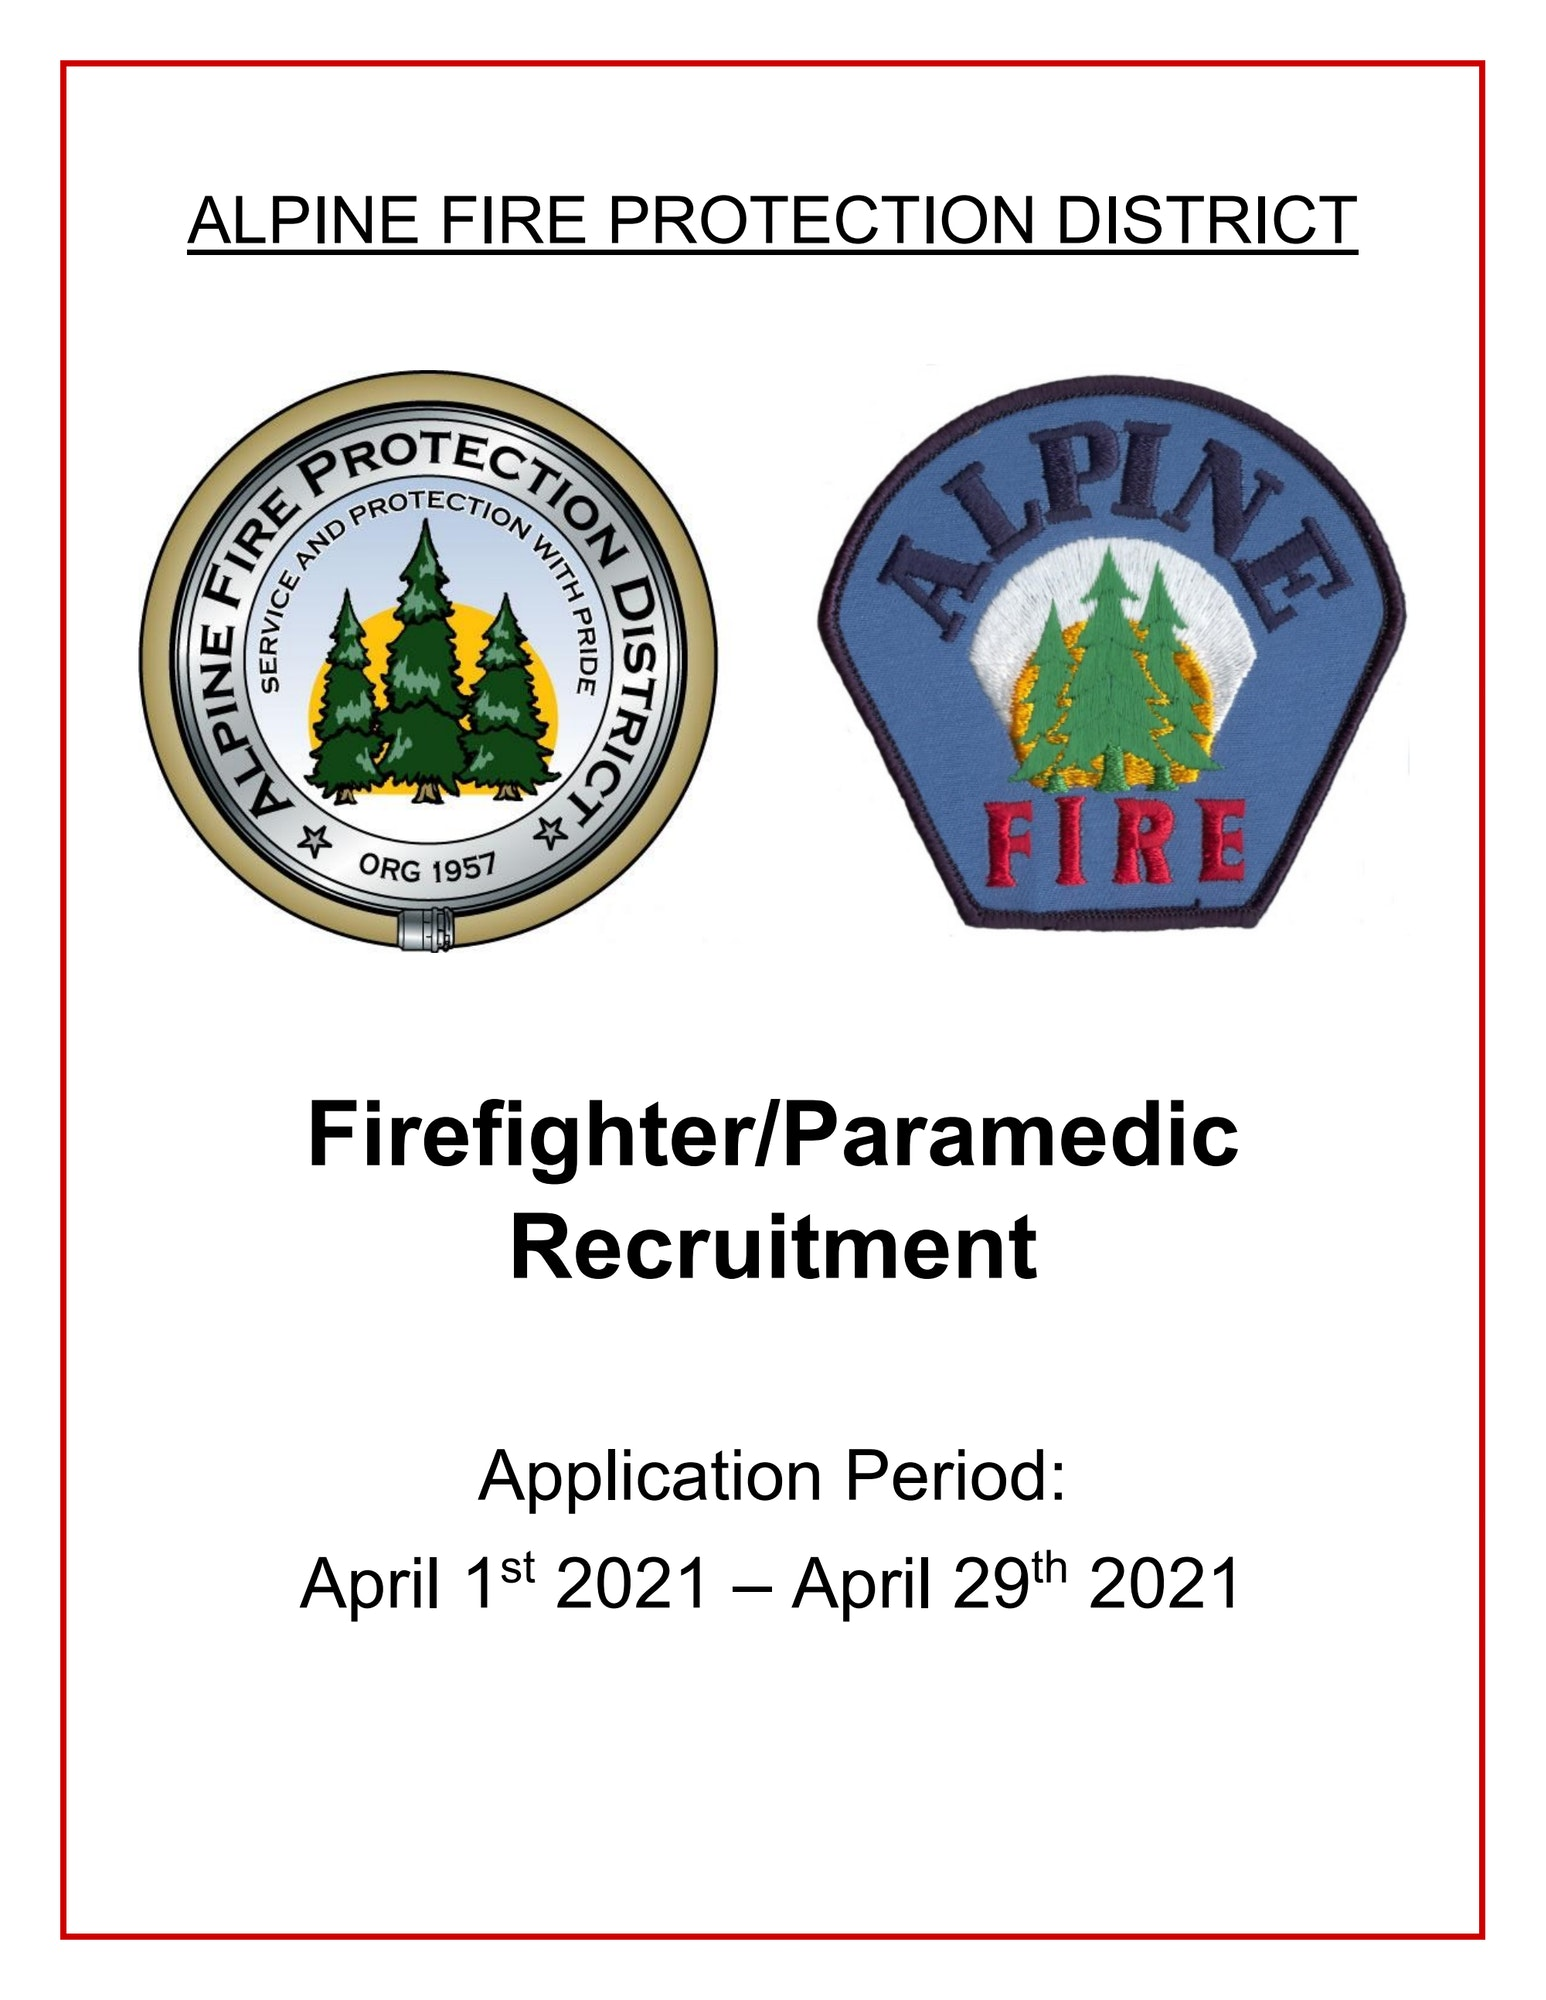 Firefighter Recruitment